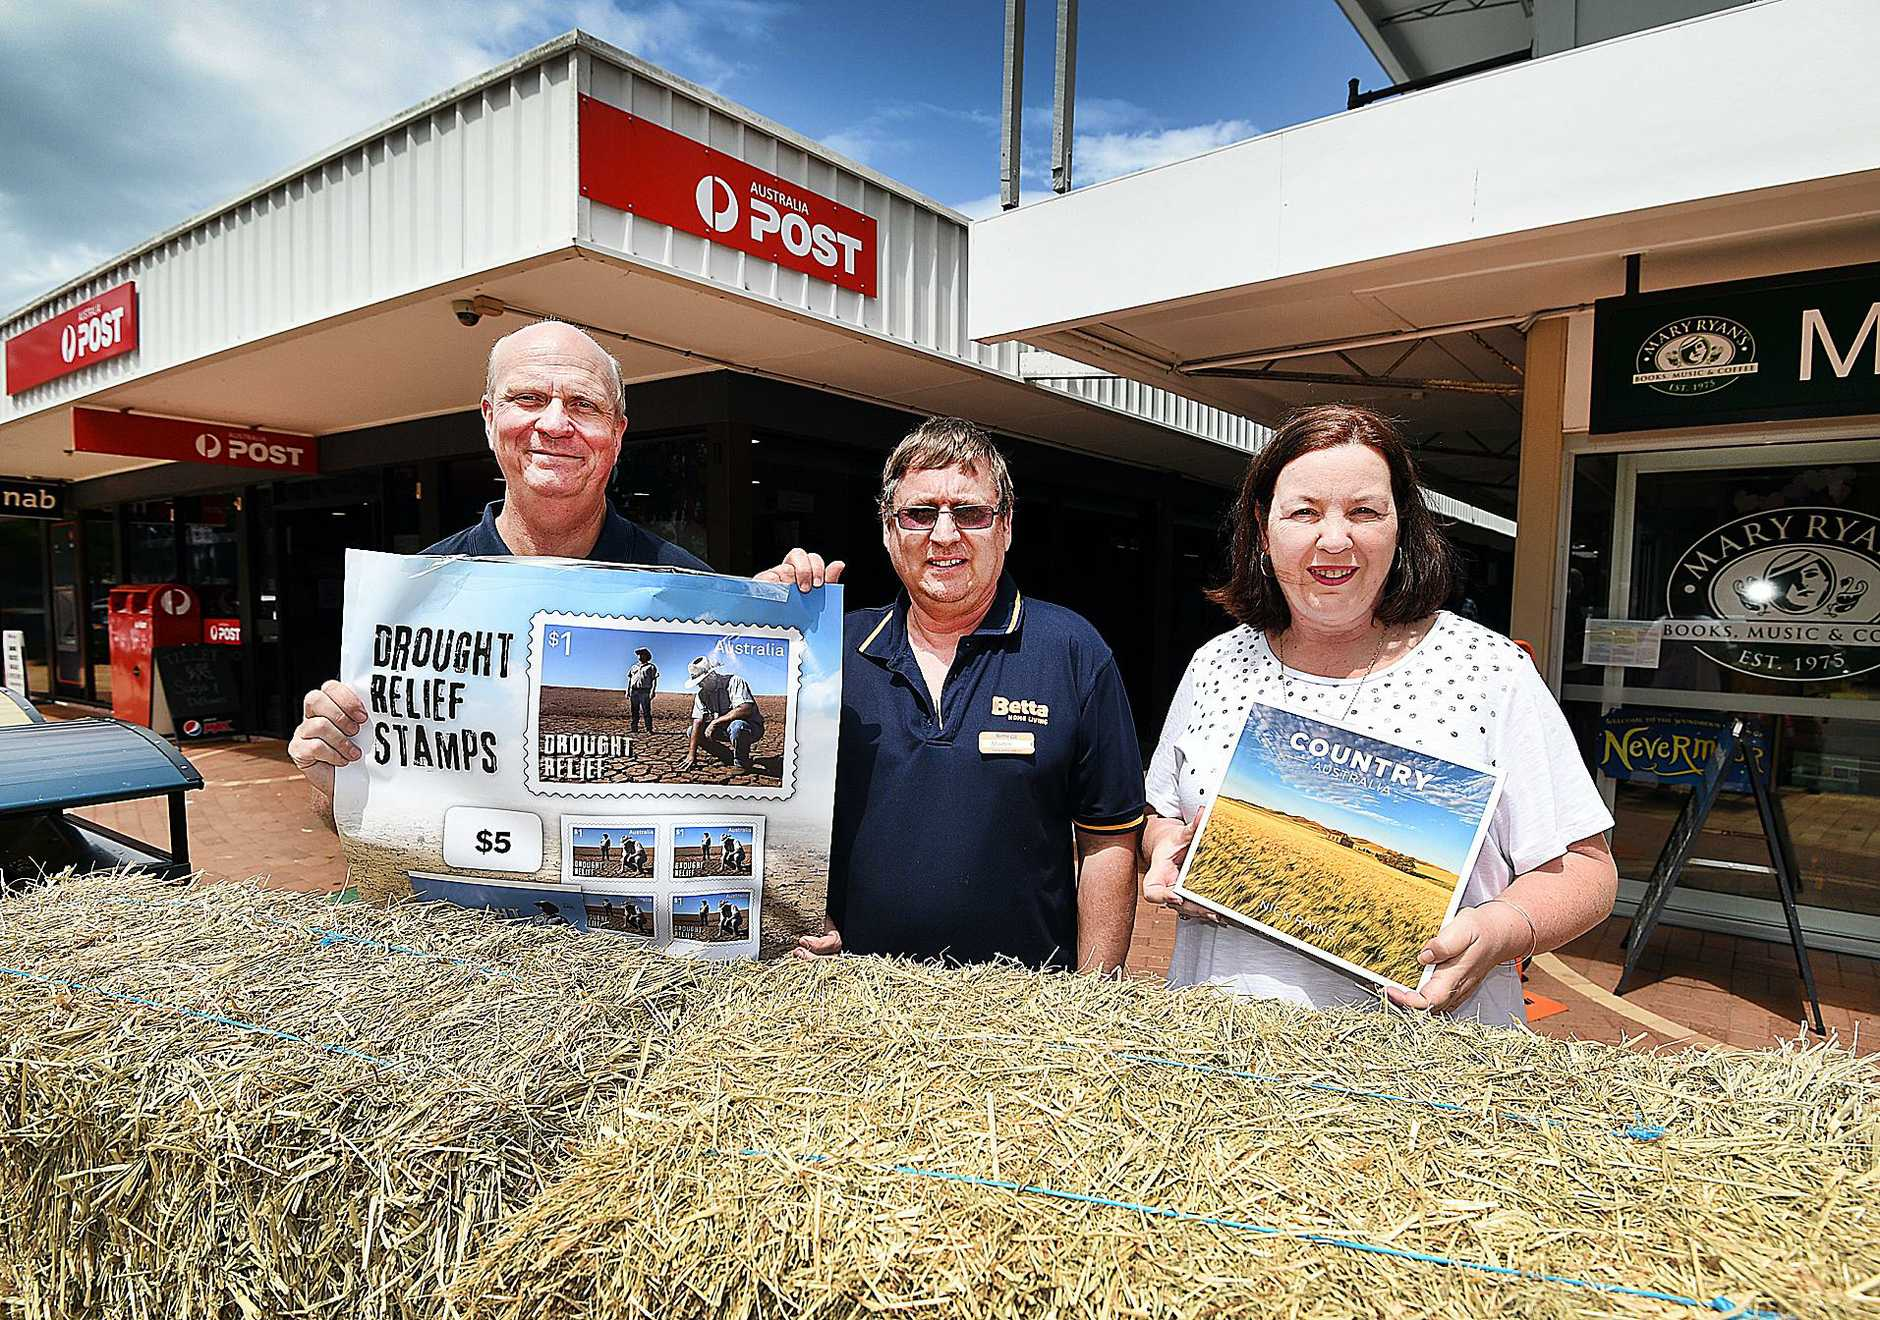 DROUGHT RELIEF: Torquay business owners Cr Rolf Light (Torquay Post Office), Martin Fraser (Betta Home Living) and Cate Akaveka (Mary Ryan's) are sending profits to farmers.